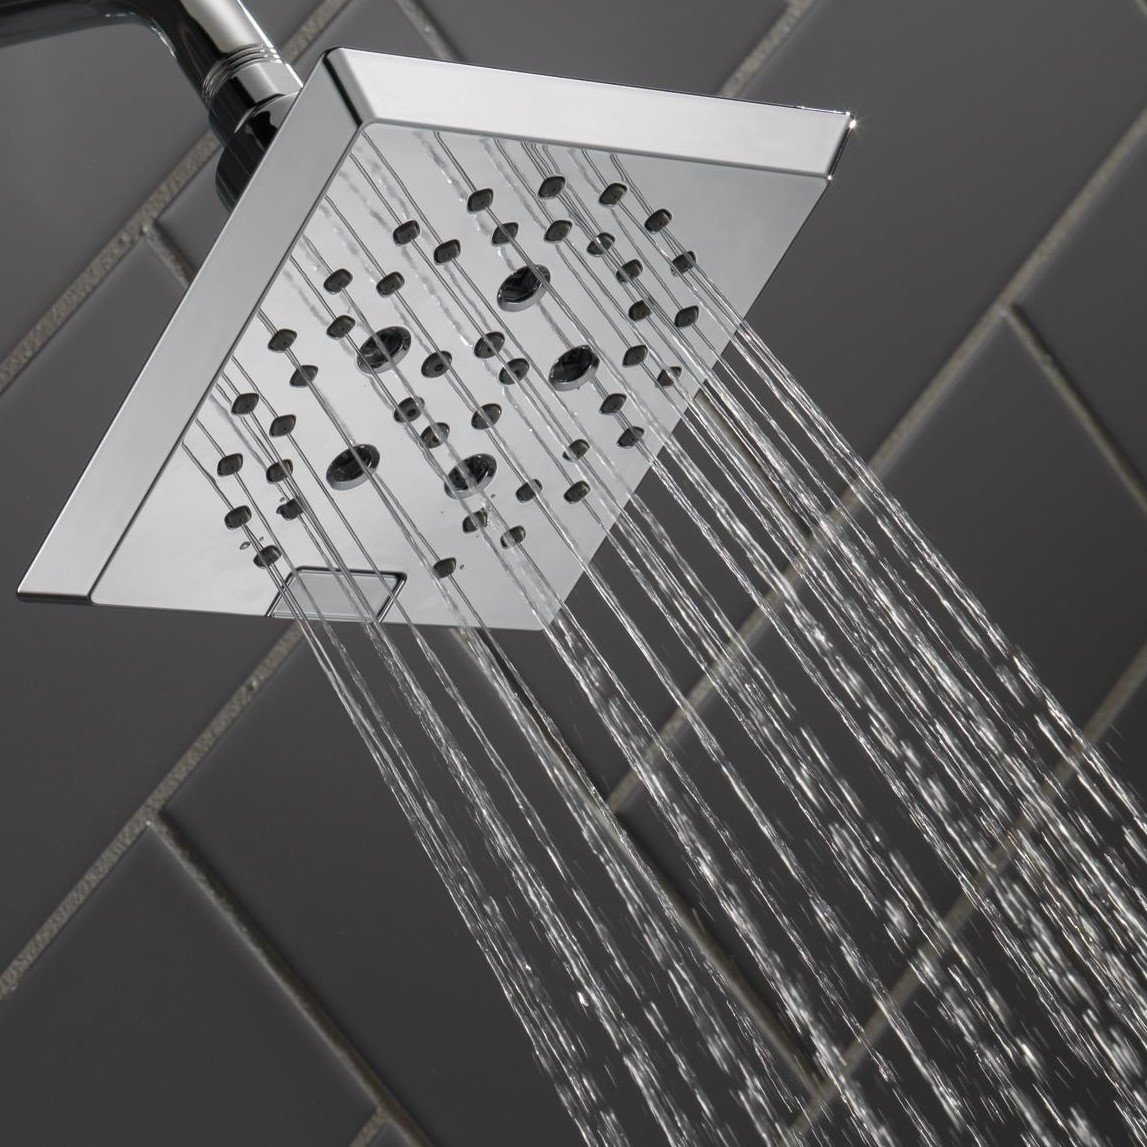 Prevents Hair and Skin Dryness Removes Chlorine and Harmful Substances Shower Filter Doesn/'t Reduce Water Pressure Limia/'s Care Universal Adaptive Design Chlorine Filter Shower Head Hard Water Filter